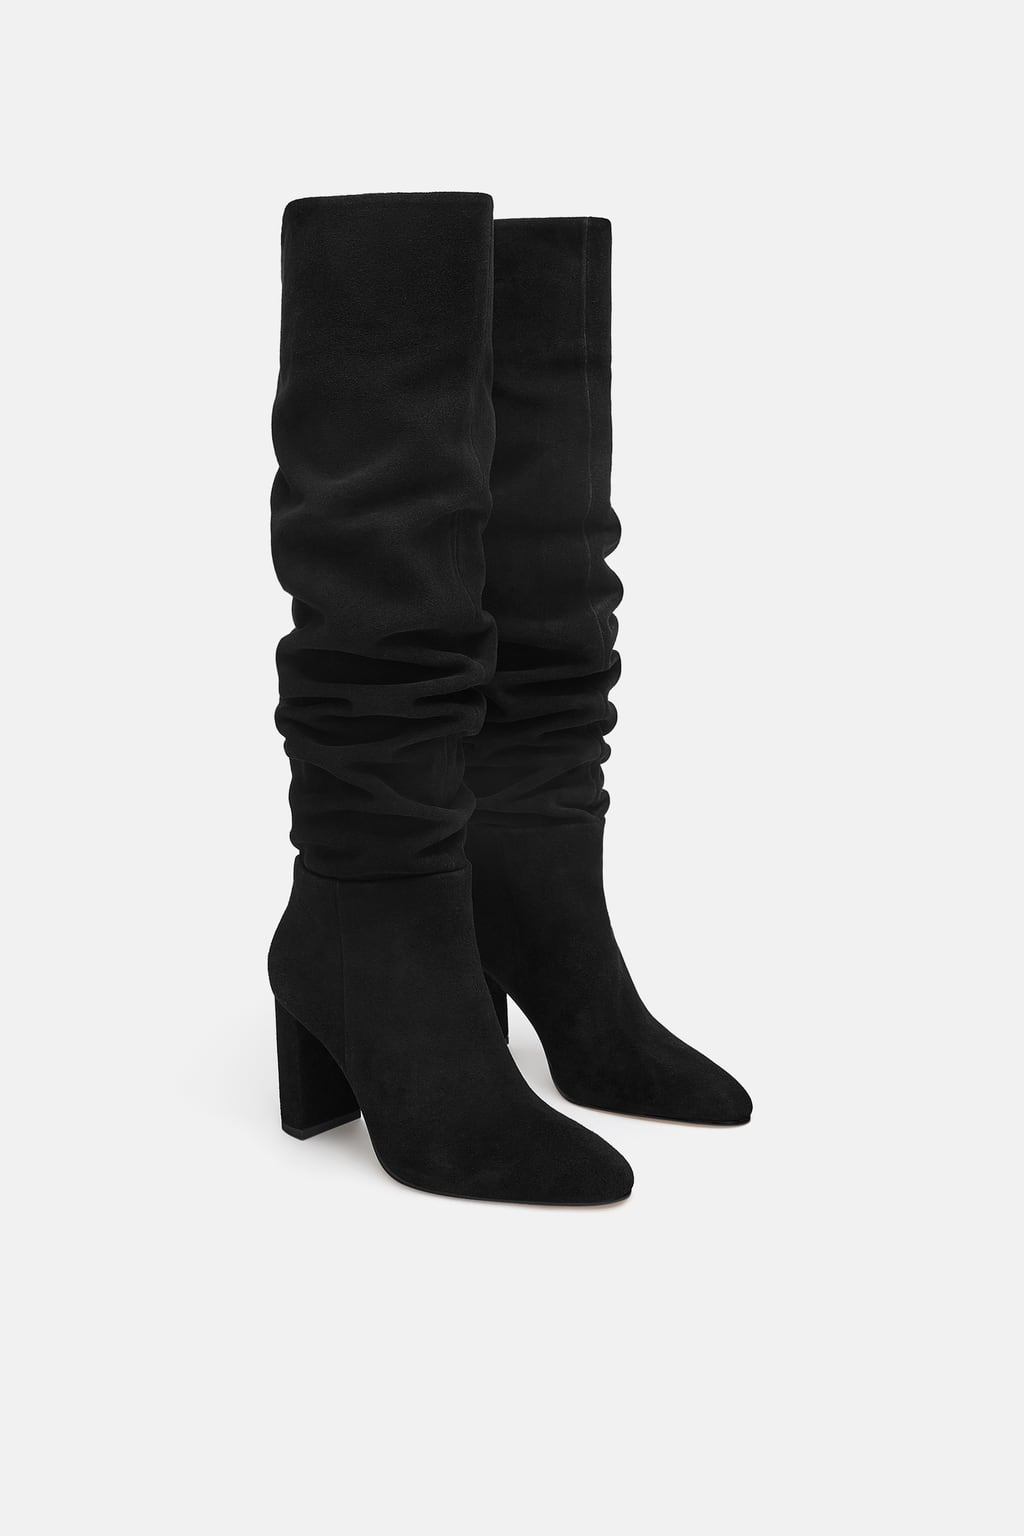 Must FemmeLes Have Chaussures Chaussures Must Must Have Have Chaussures FemmeLes FemmeLes K3uTl1JcF